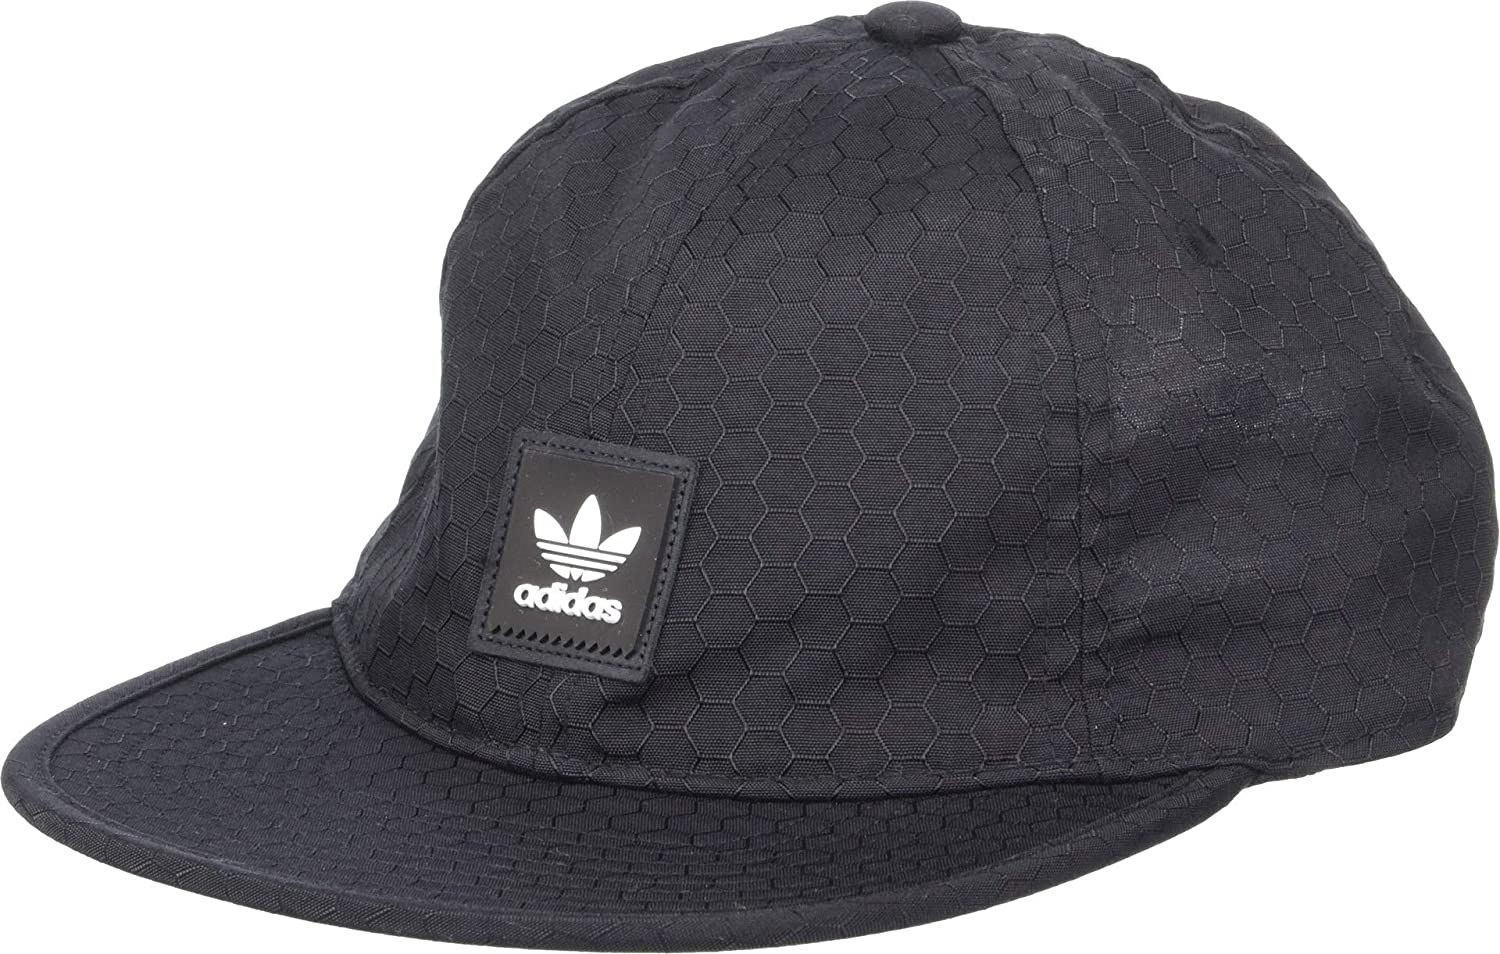 adidas Skateboarding Men s Insley Crusher Hat Dark Grey Heather Solid Grey  One Size at Amazon Men s Clothing store  0779d4b45e8